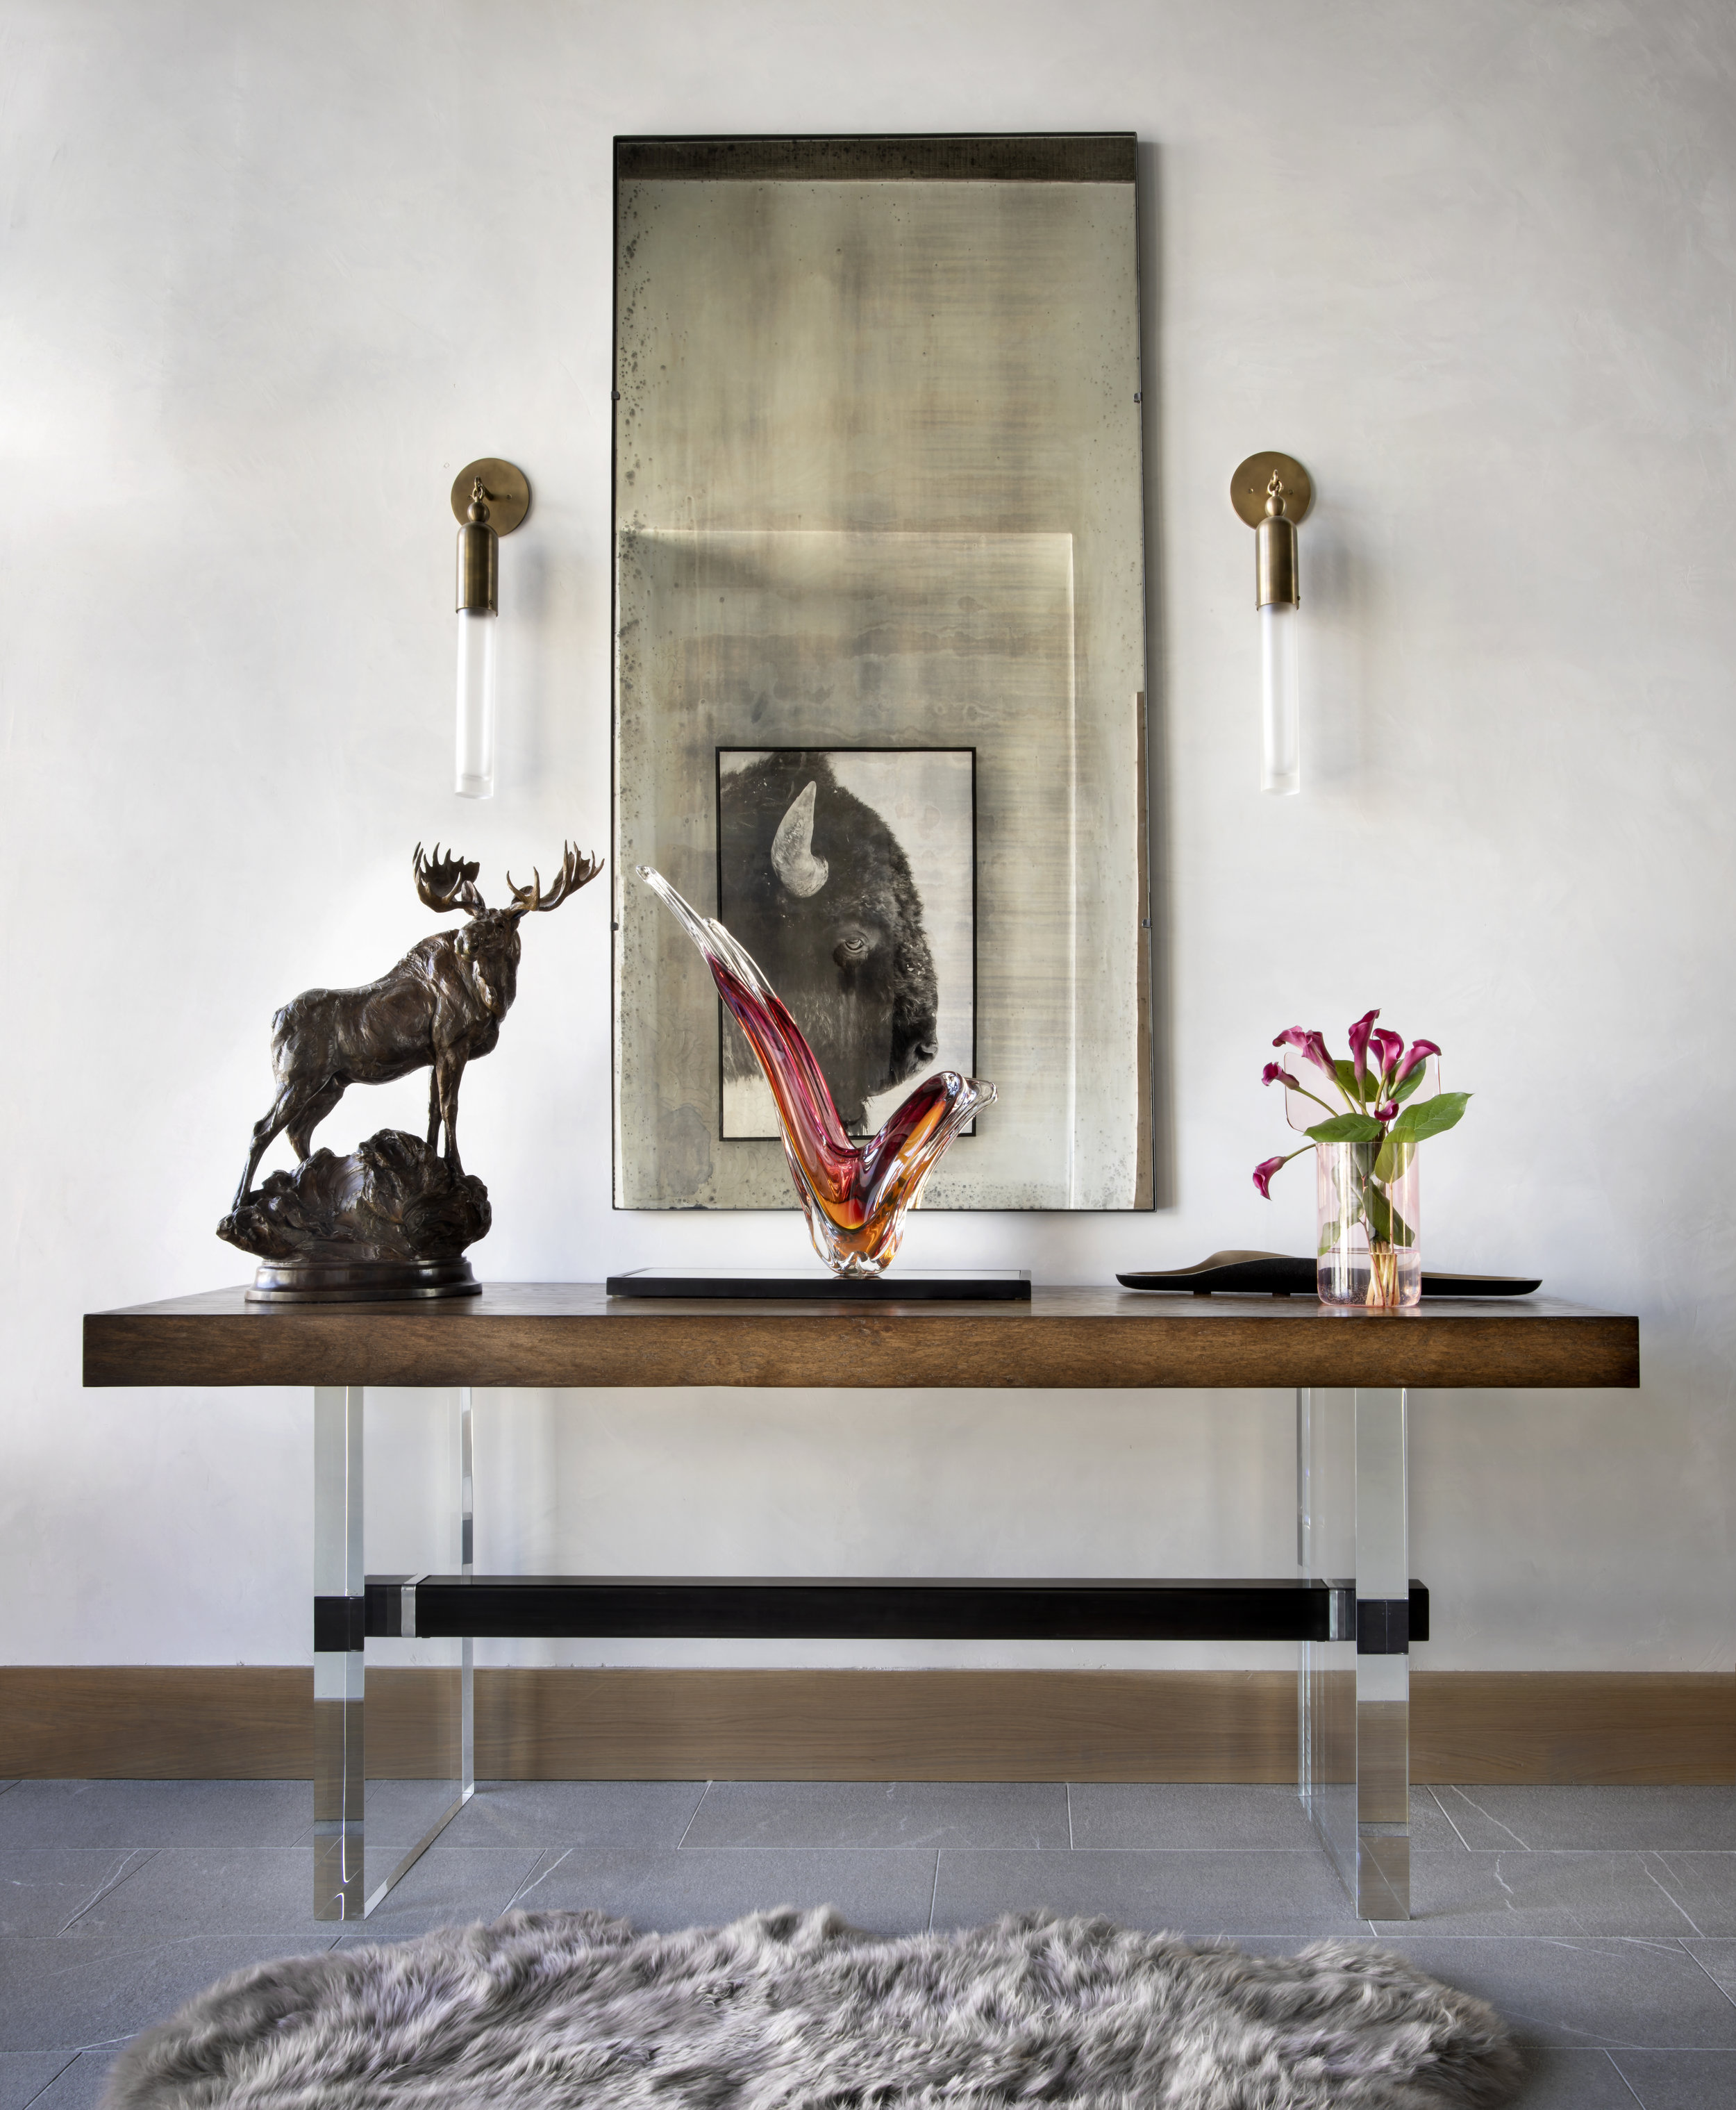 Custom Acrylic Base Console and Furnishings Throughout | Brandner Design